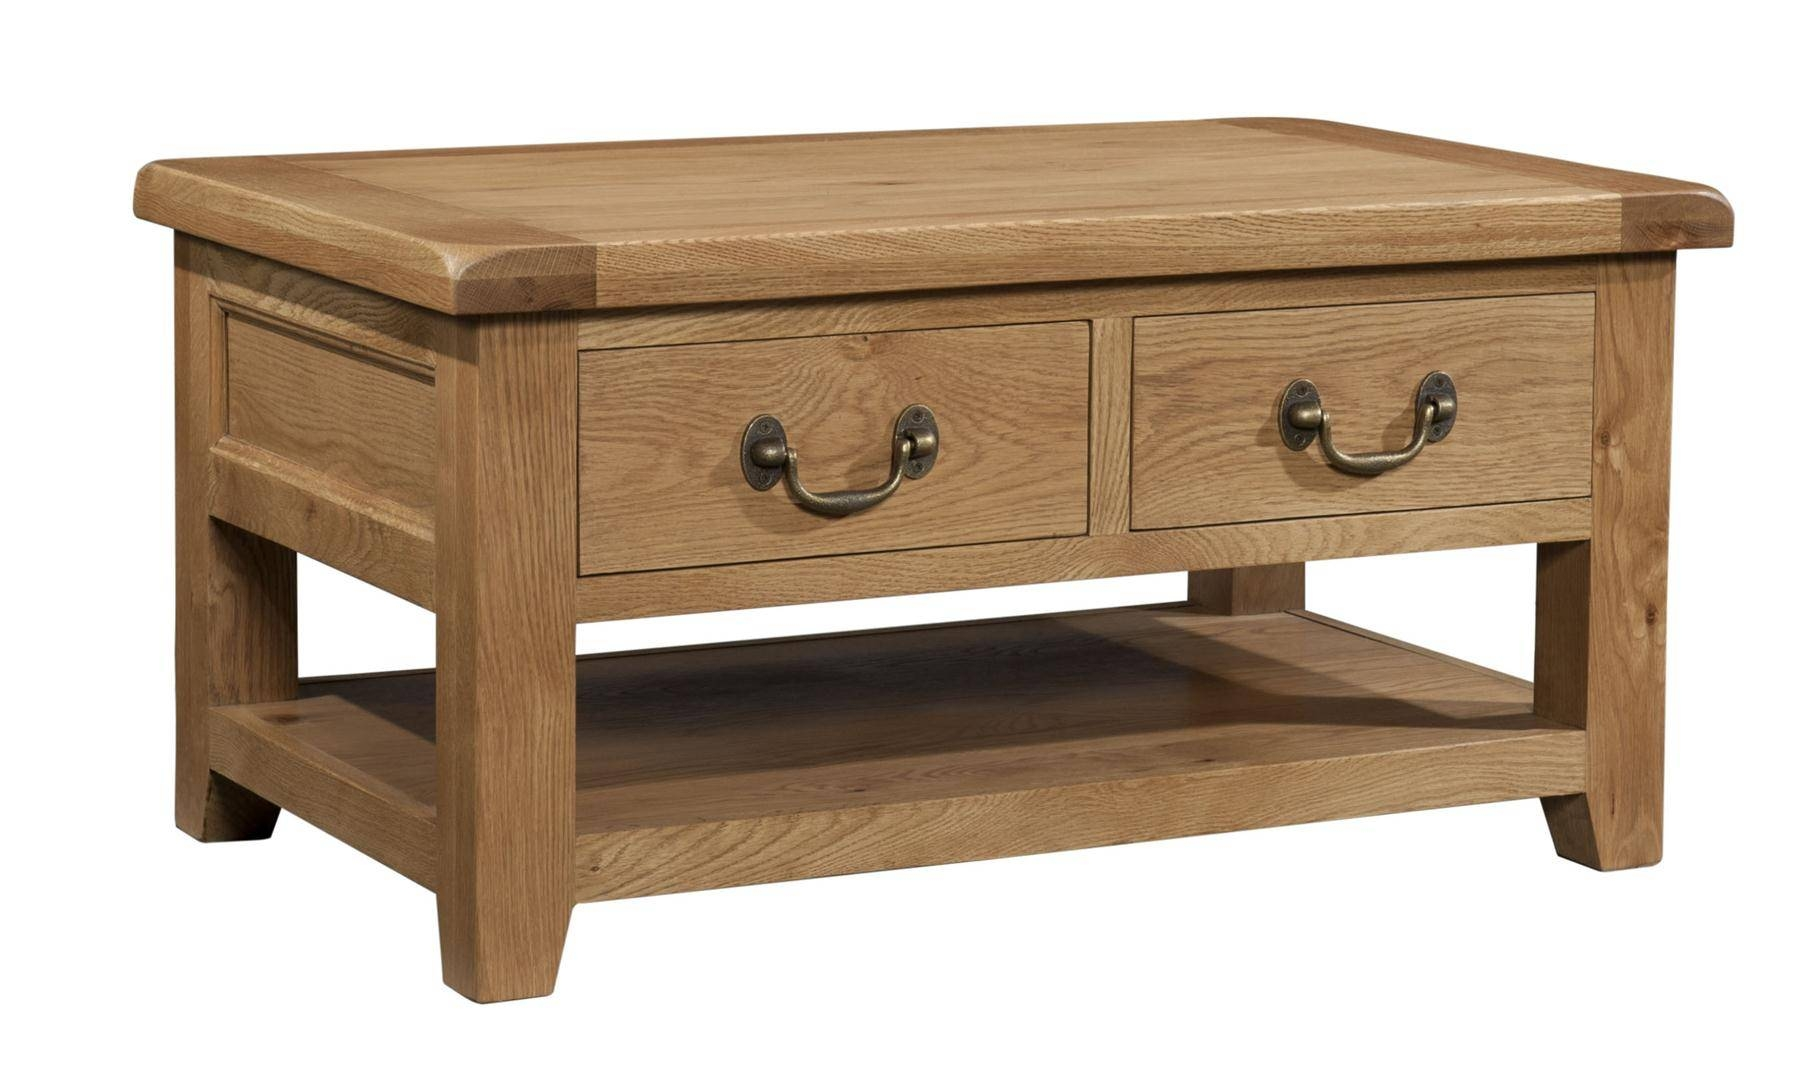 Somerset Chunky Oak Furniture : Somerset Chunky Oak Coffee Table Intended For Chunky Oak Coffee Tables (View 30 of 30)